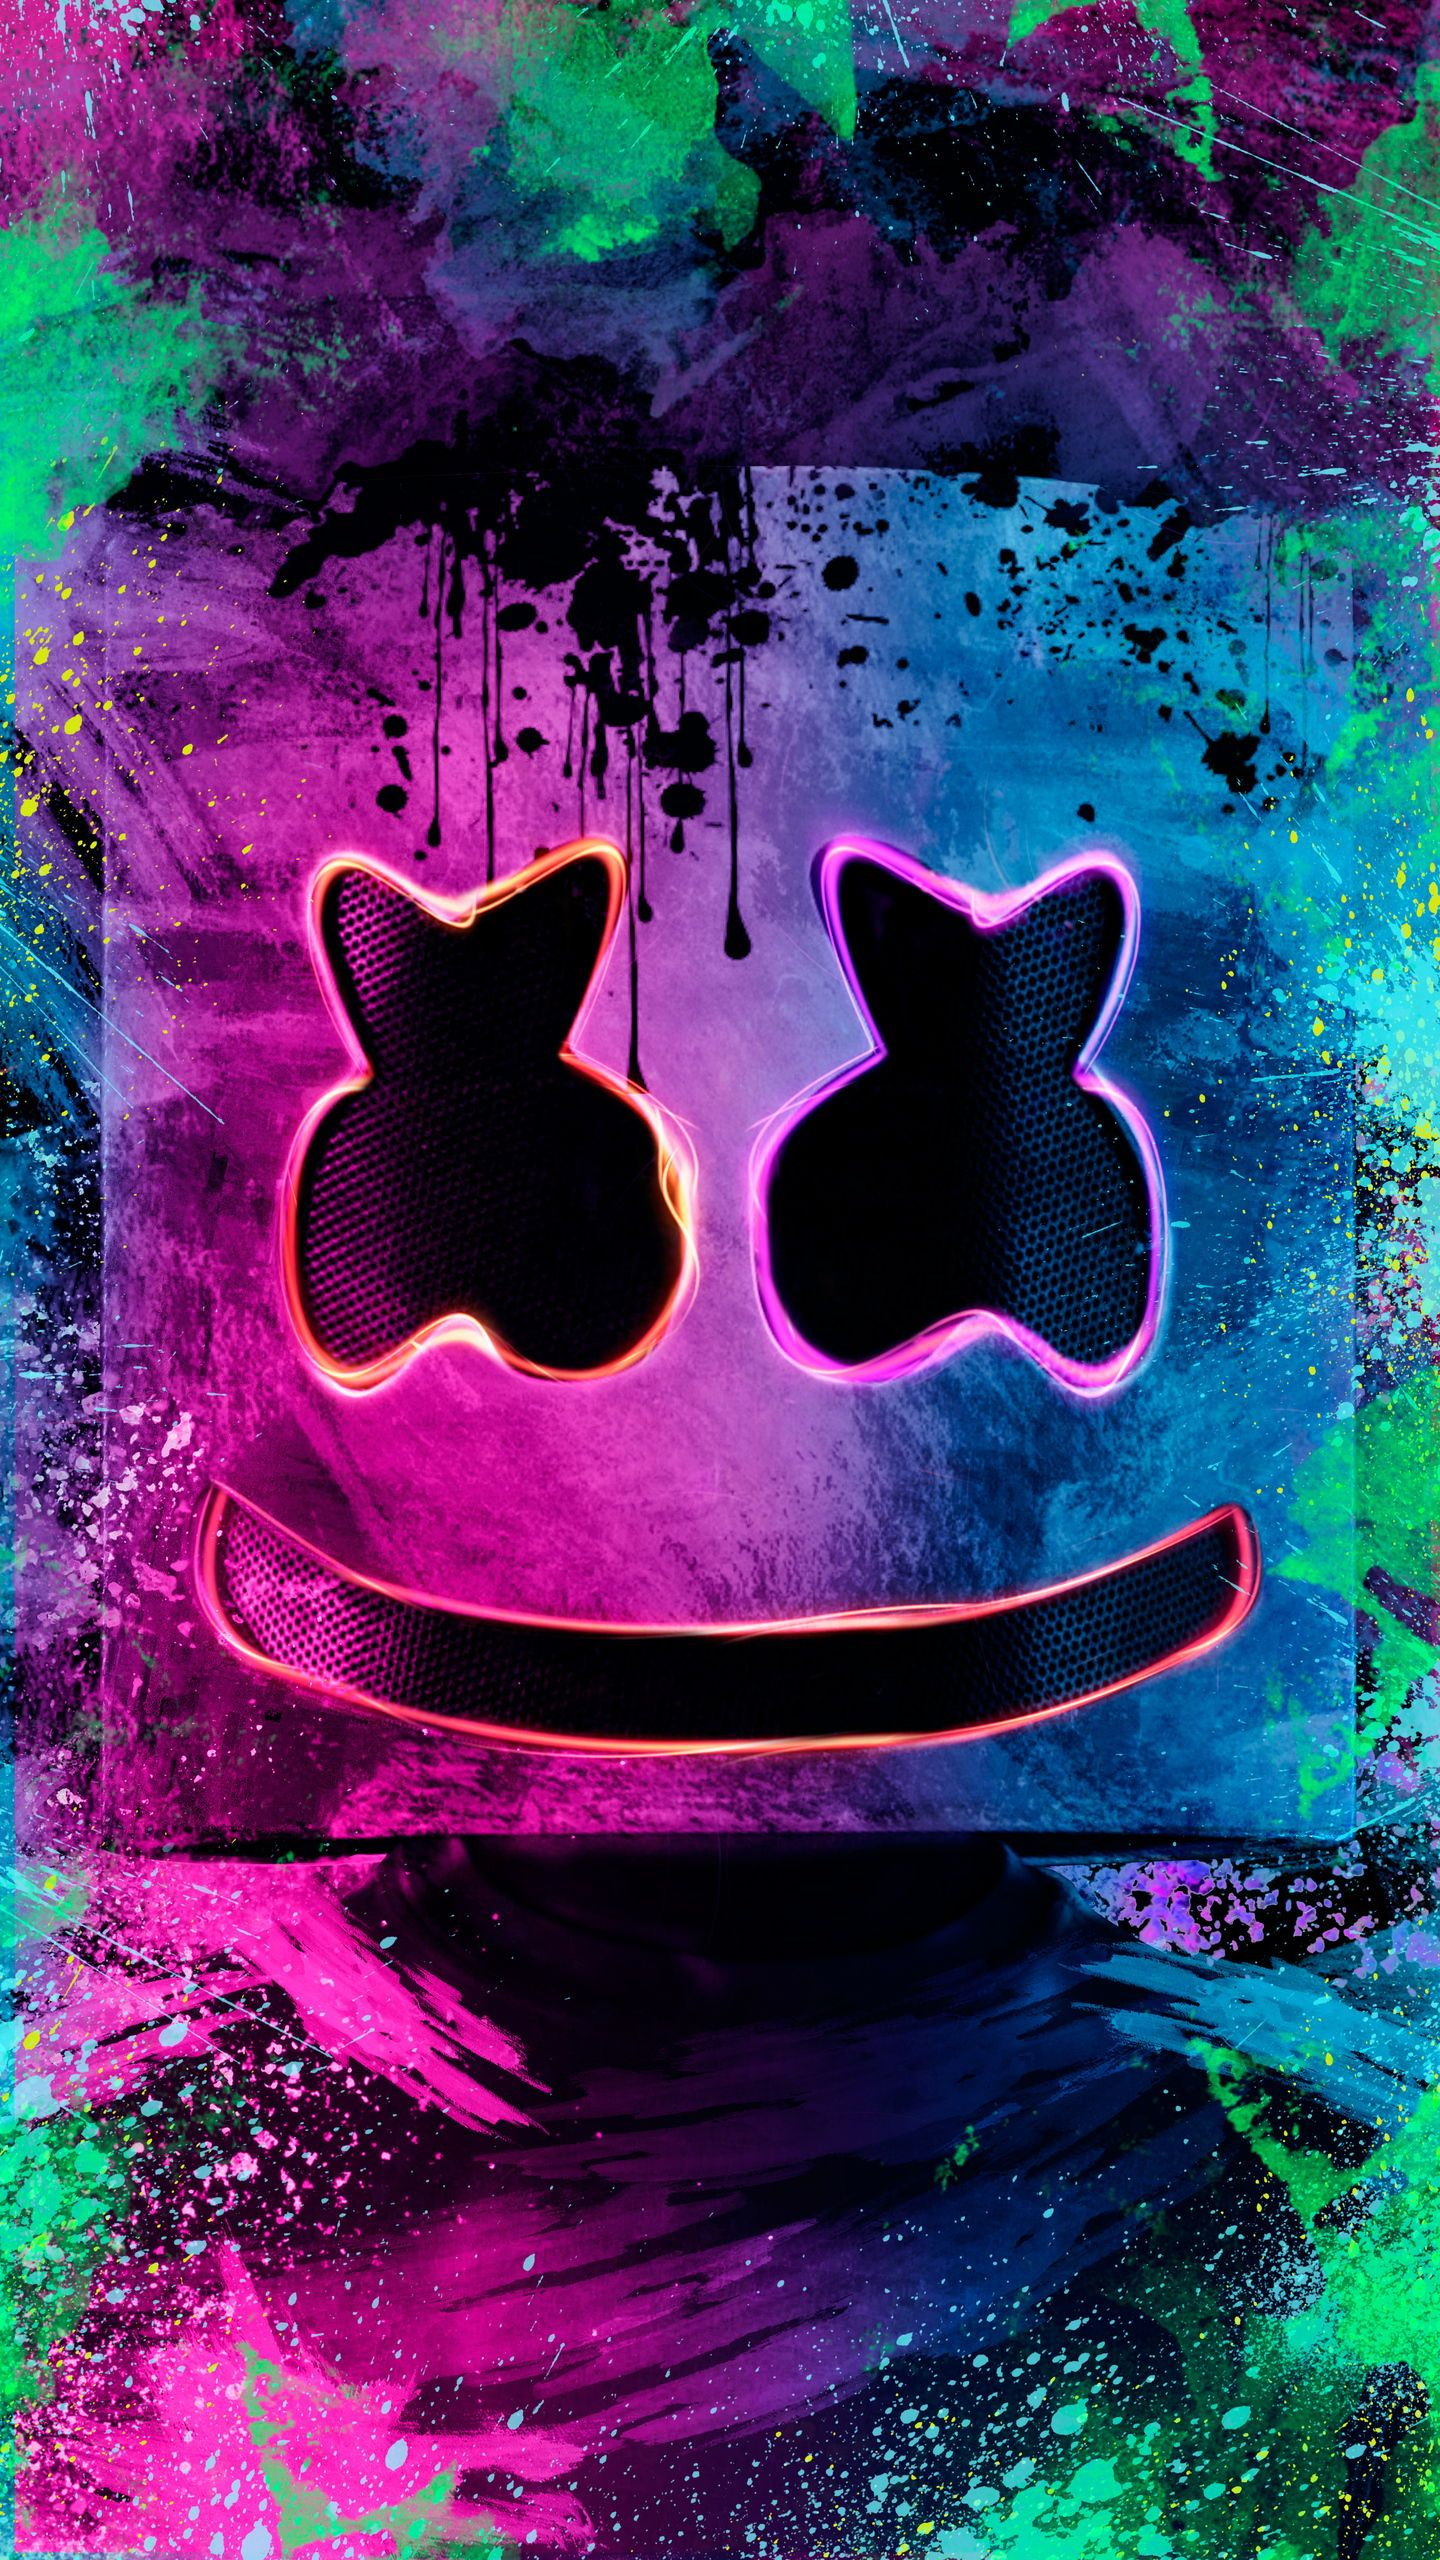 Marshmello Wallpaper Dj Wallpaper Fanart Iphone Save Marshmello Papel De Parede De Arte Marshmello Wallpapers Wallpaper De Desenhos Animados